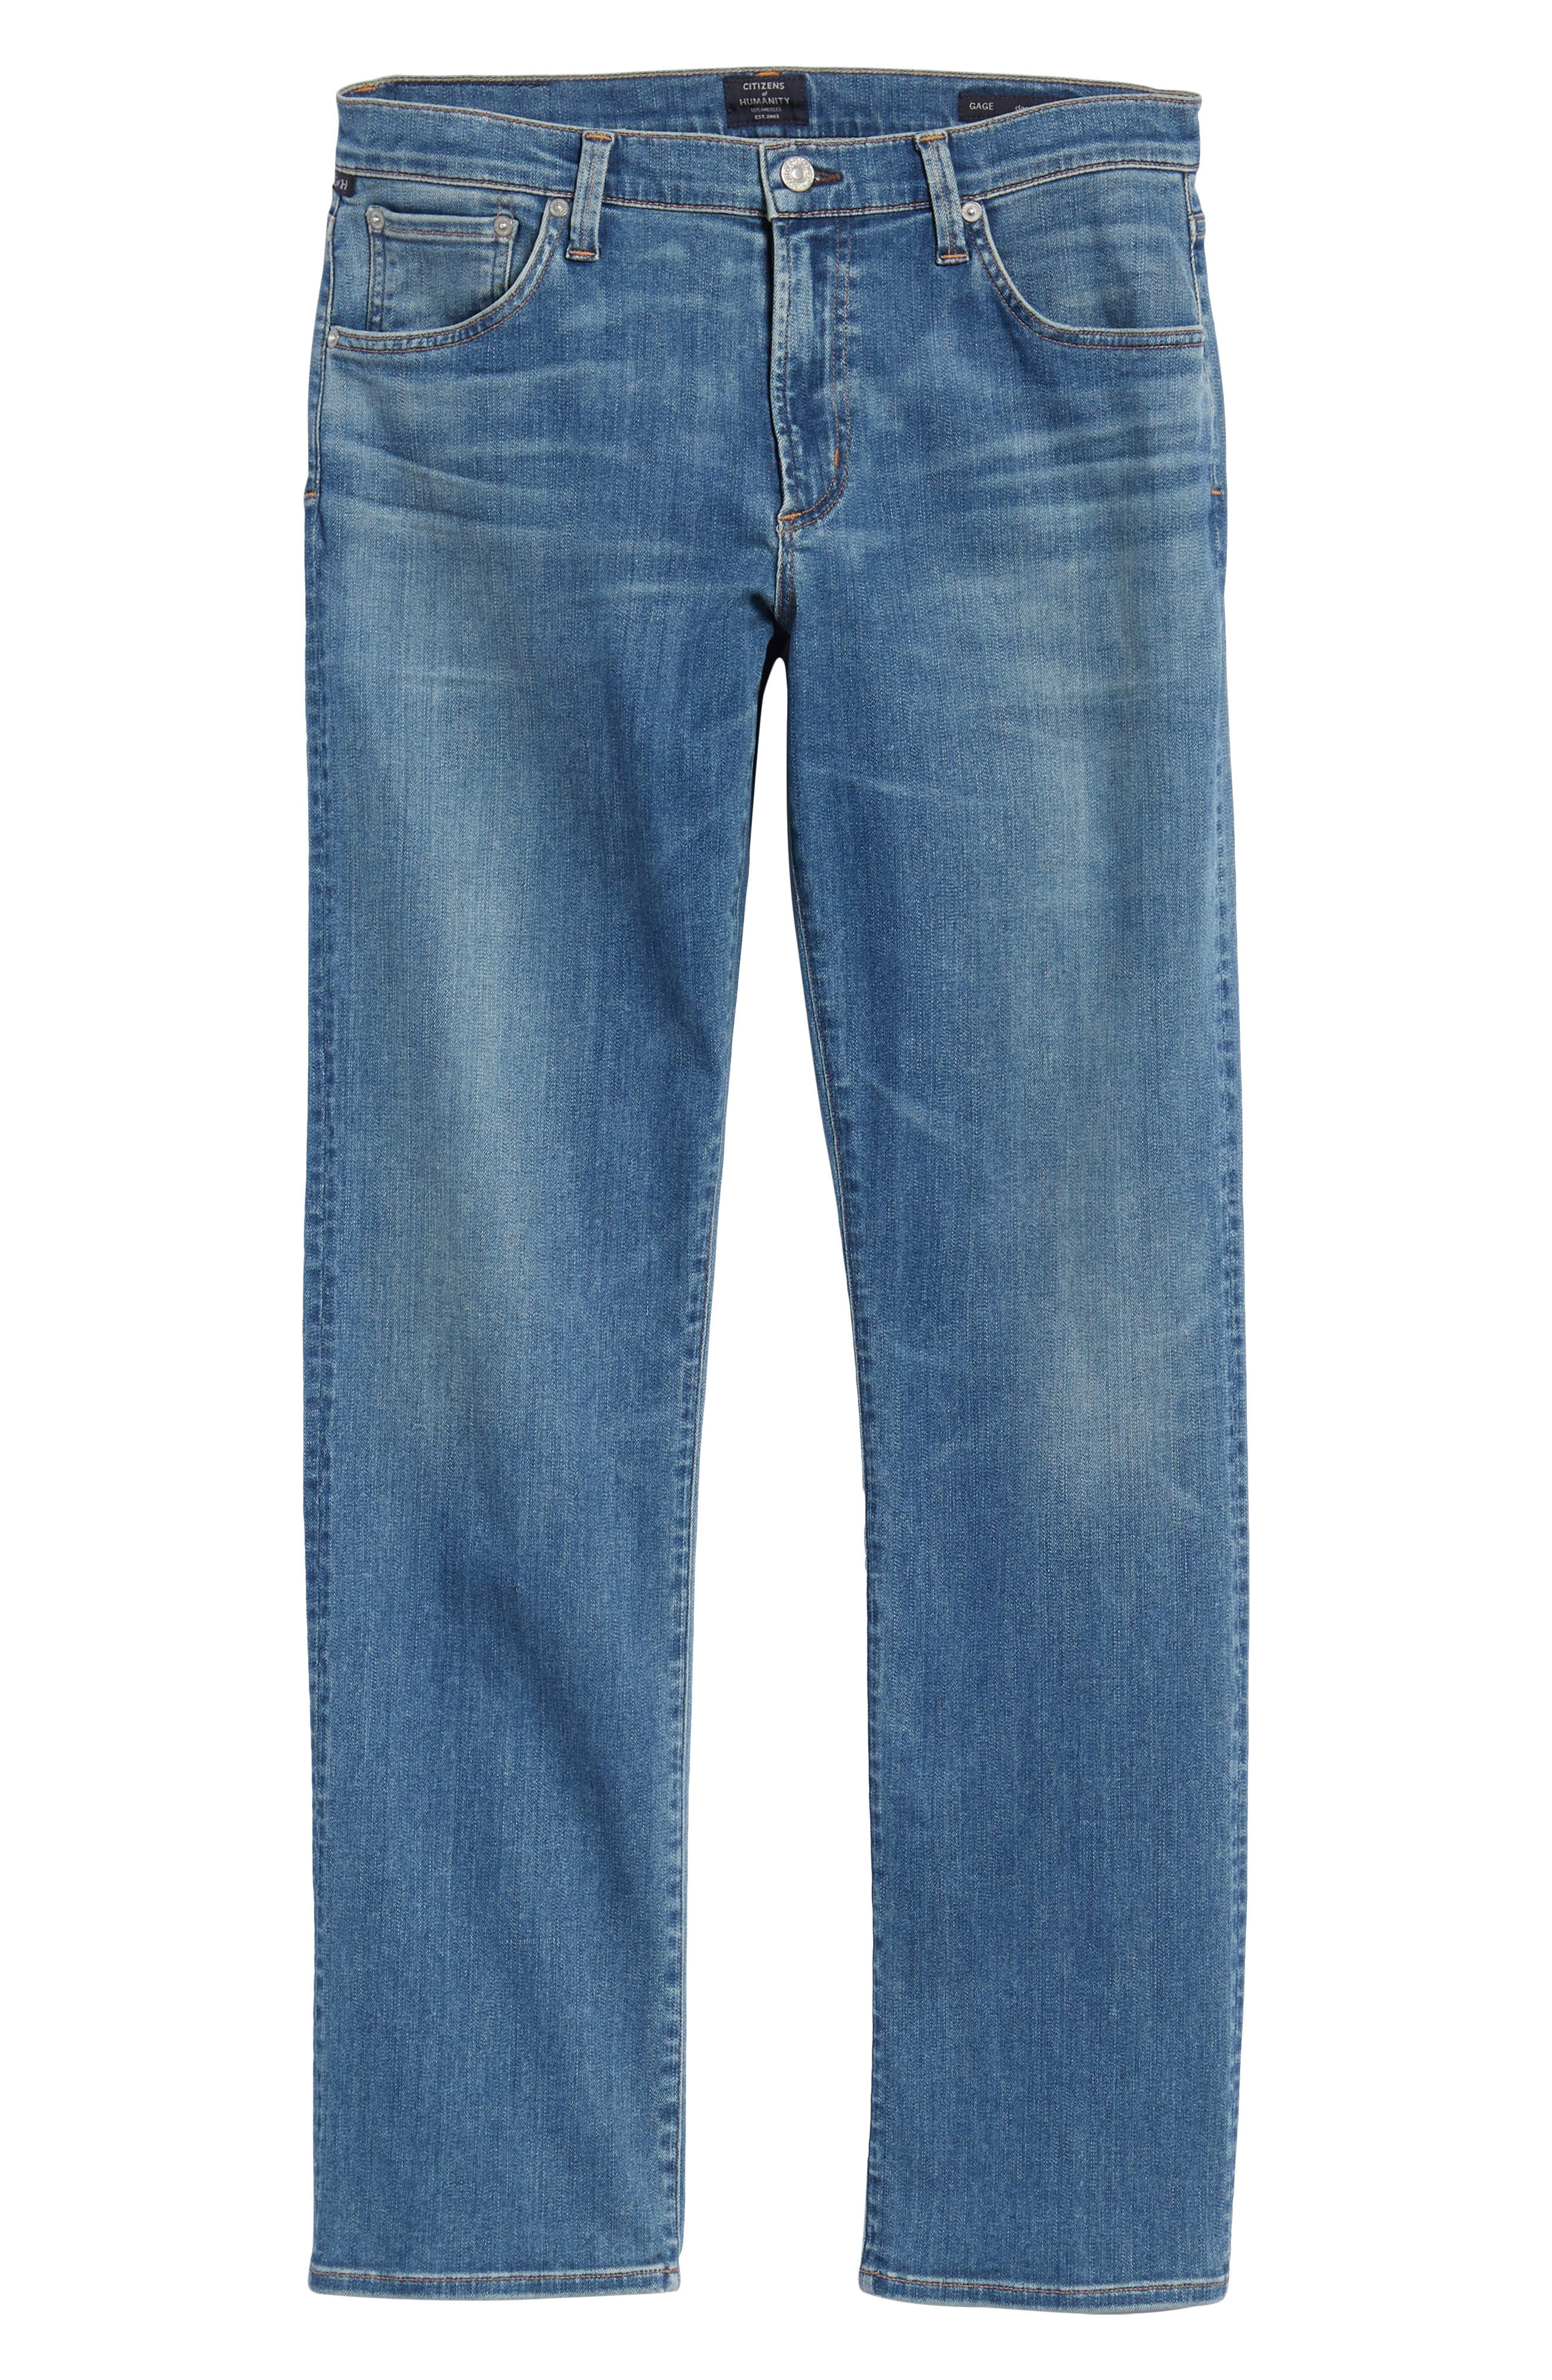 Perform - Gage Slim Straight Leg Jeans,                             Alternate thumbnail 6, color,                             456